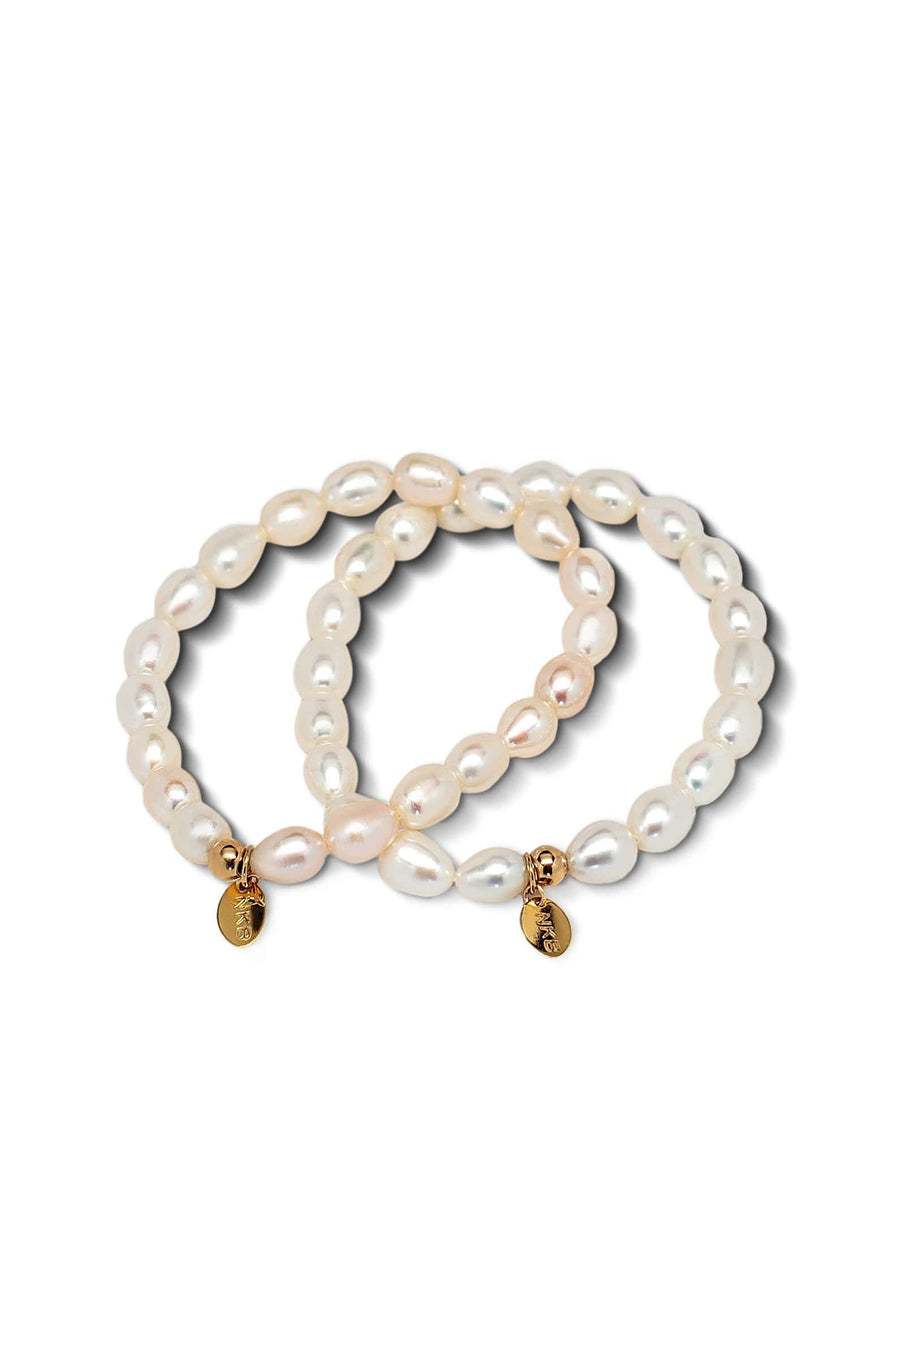 NKB Rice Pearl Bracelet - South of London